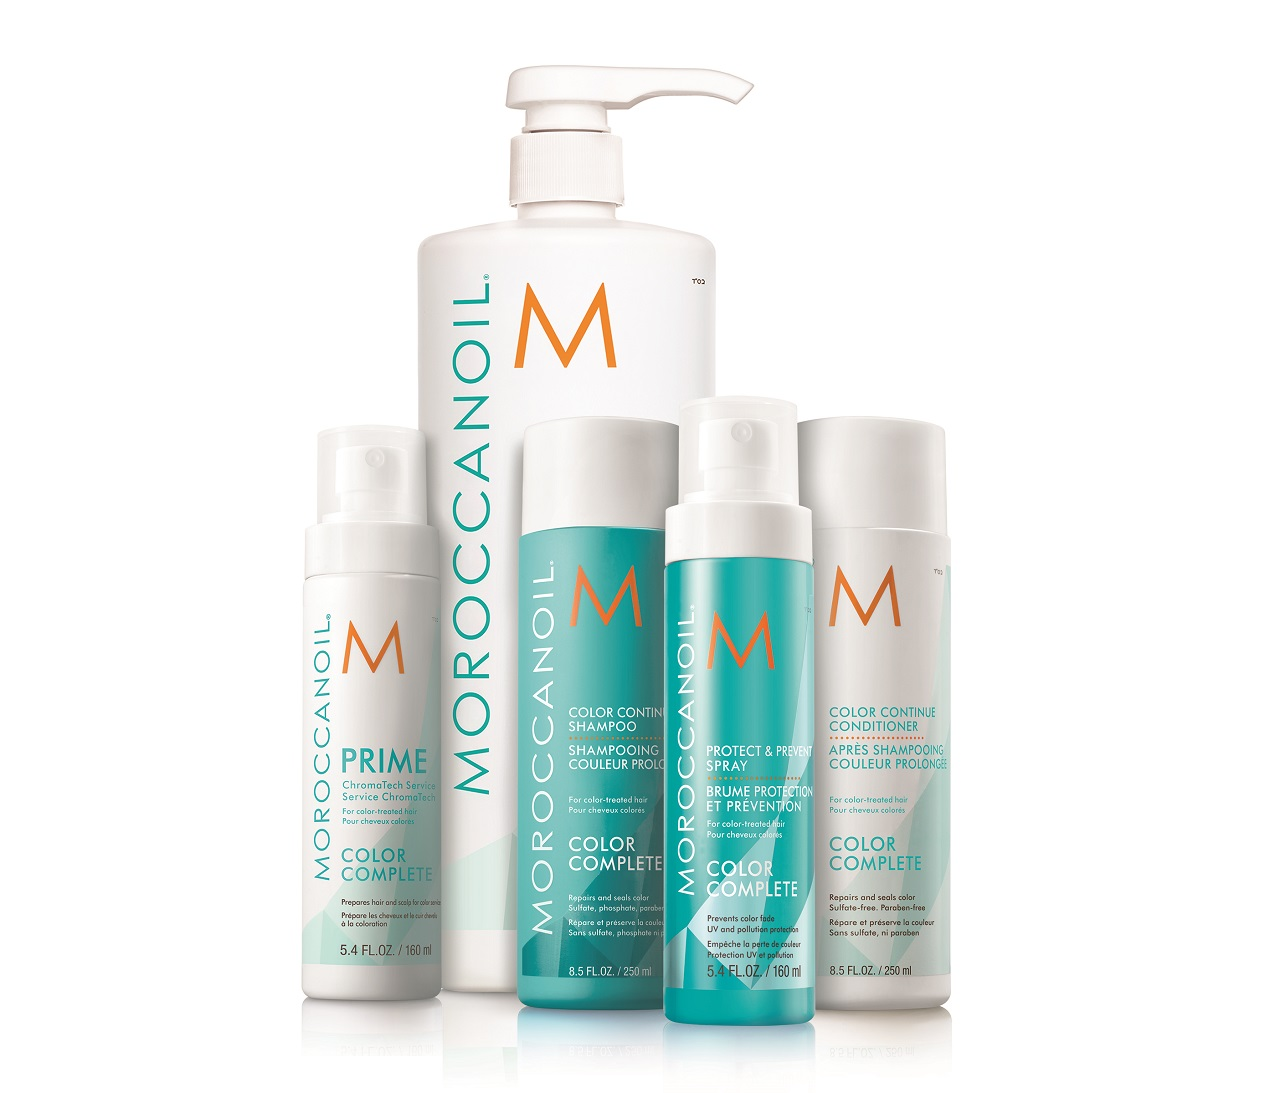 Color_Complete_Moroccanoil צילום ג'ושוע סקוט